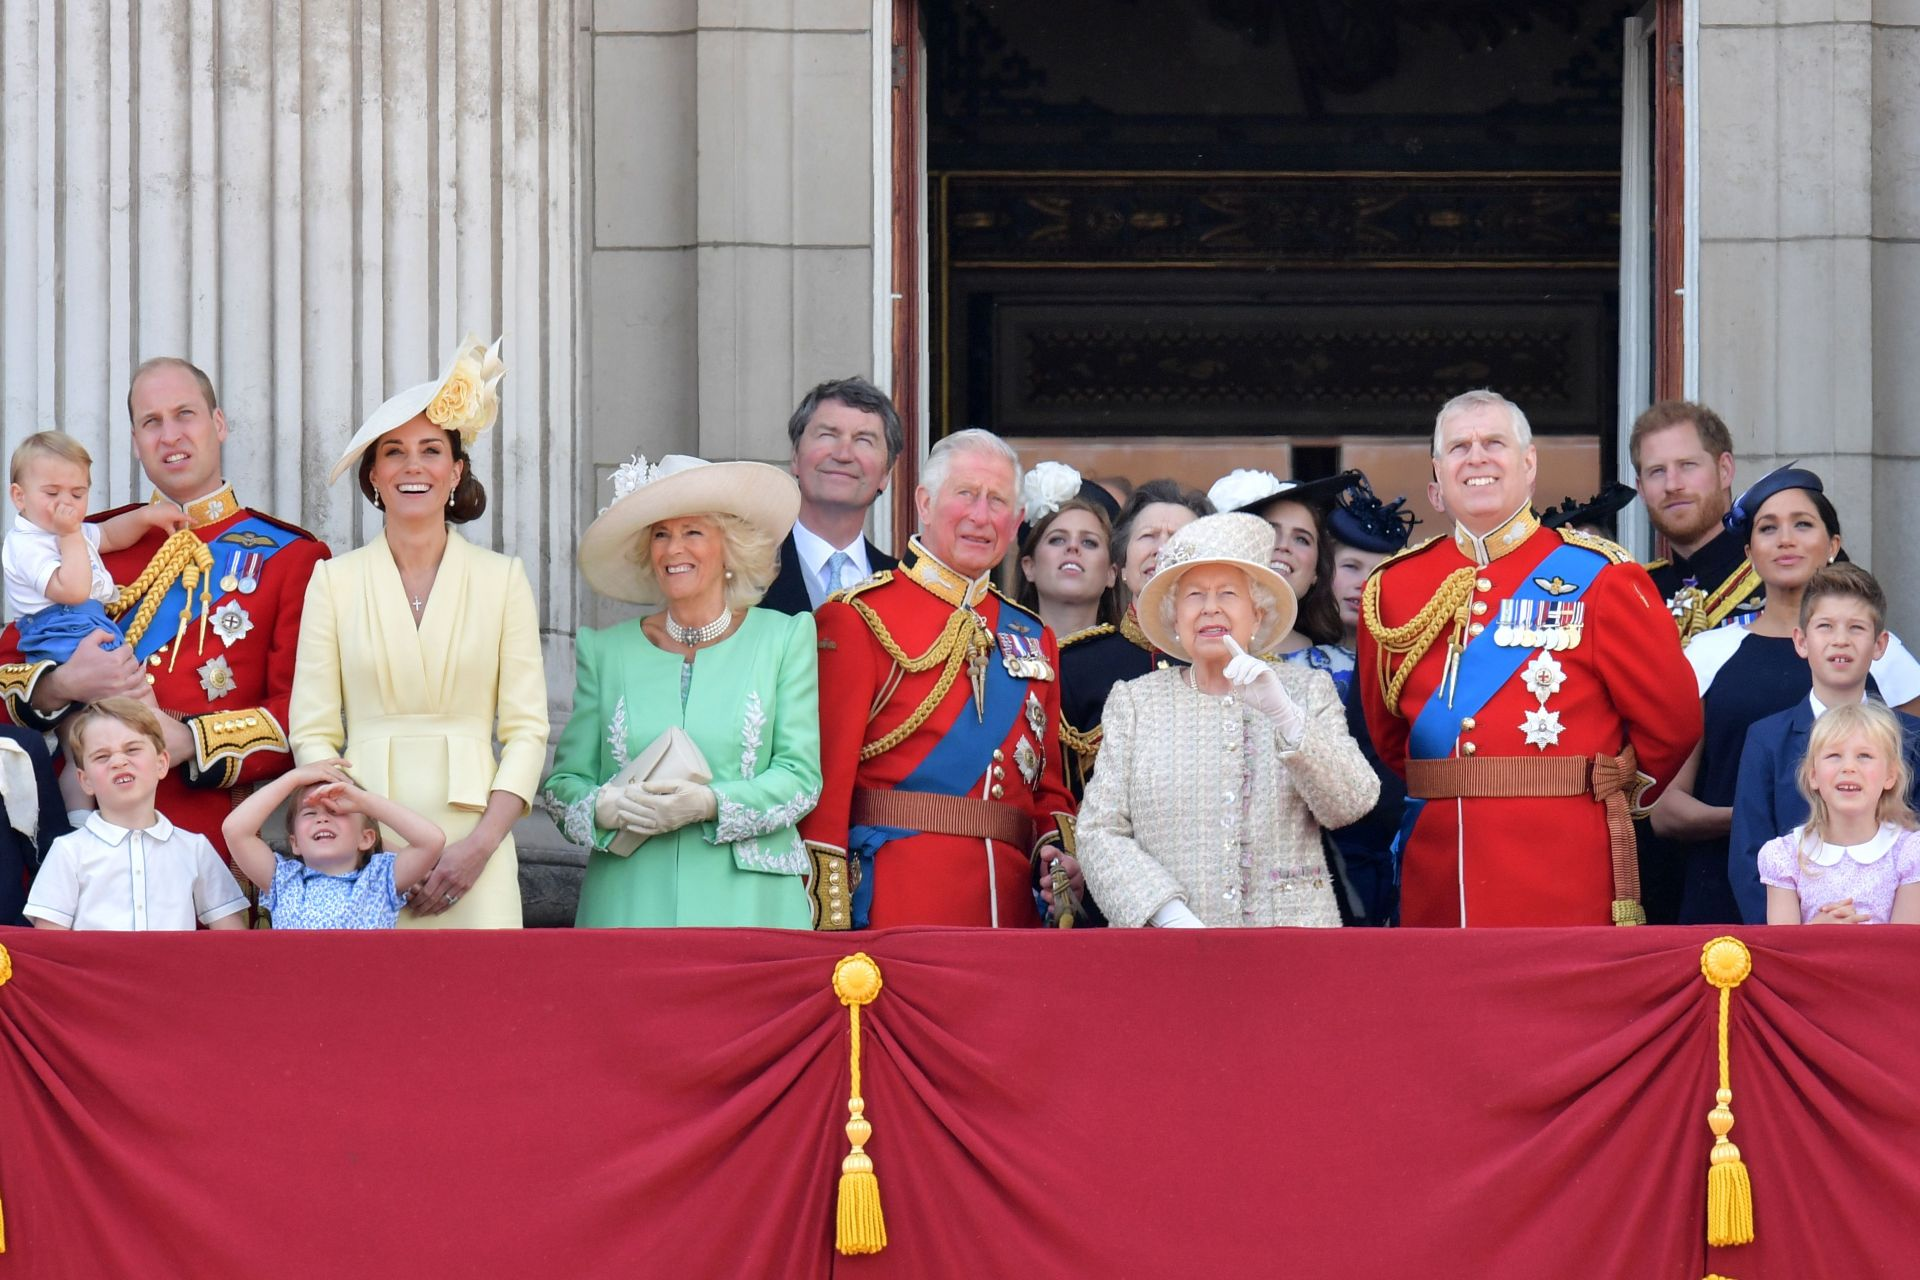 10 royal jobs you didn't know existed